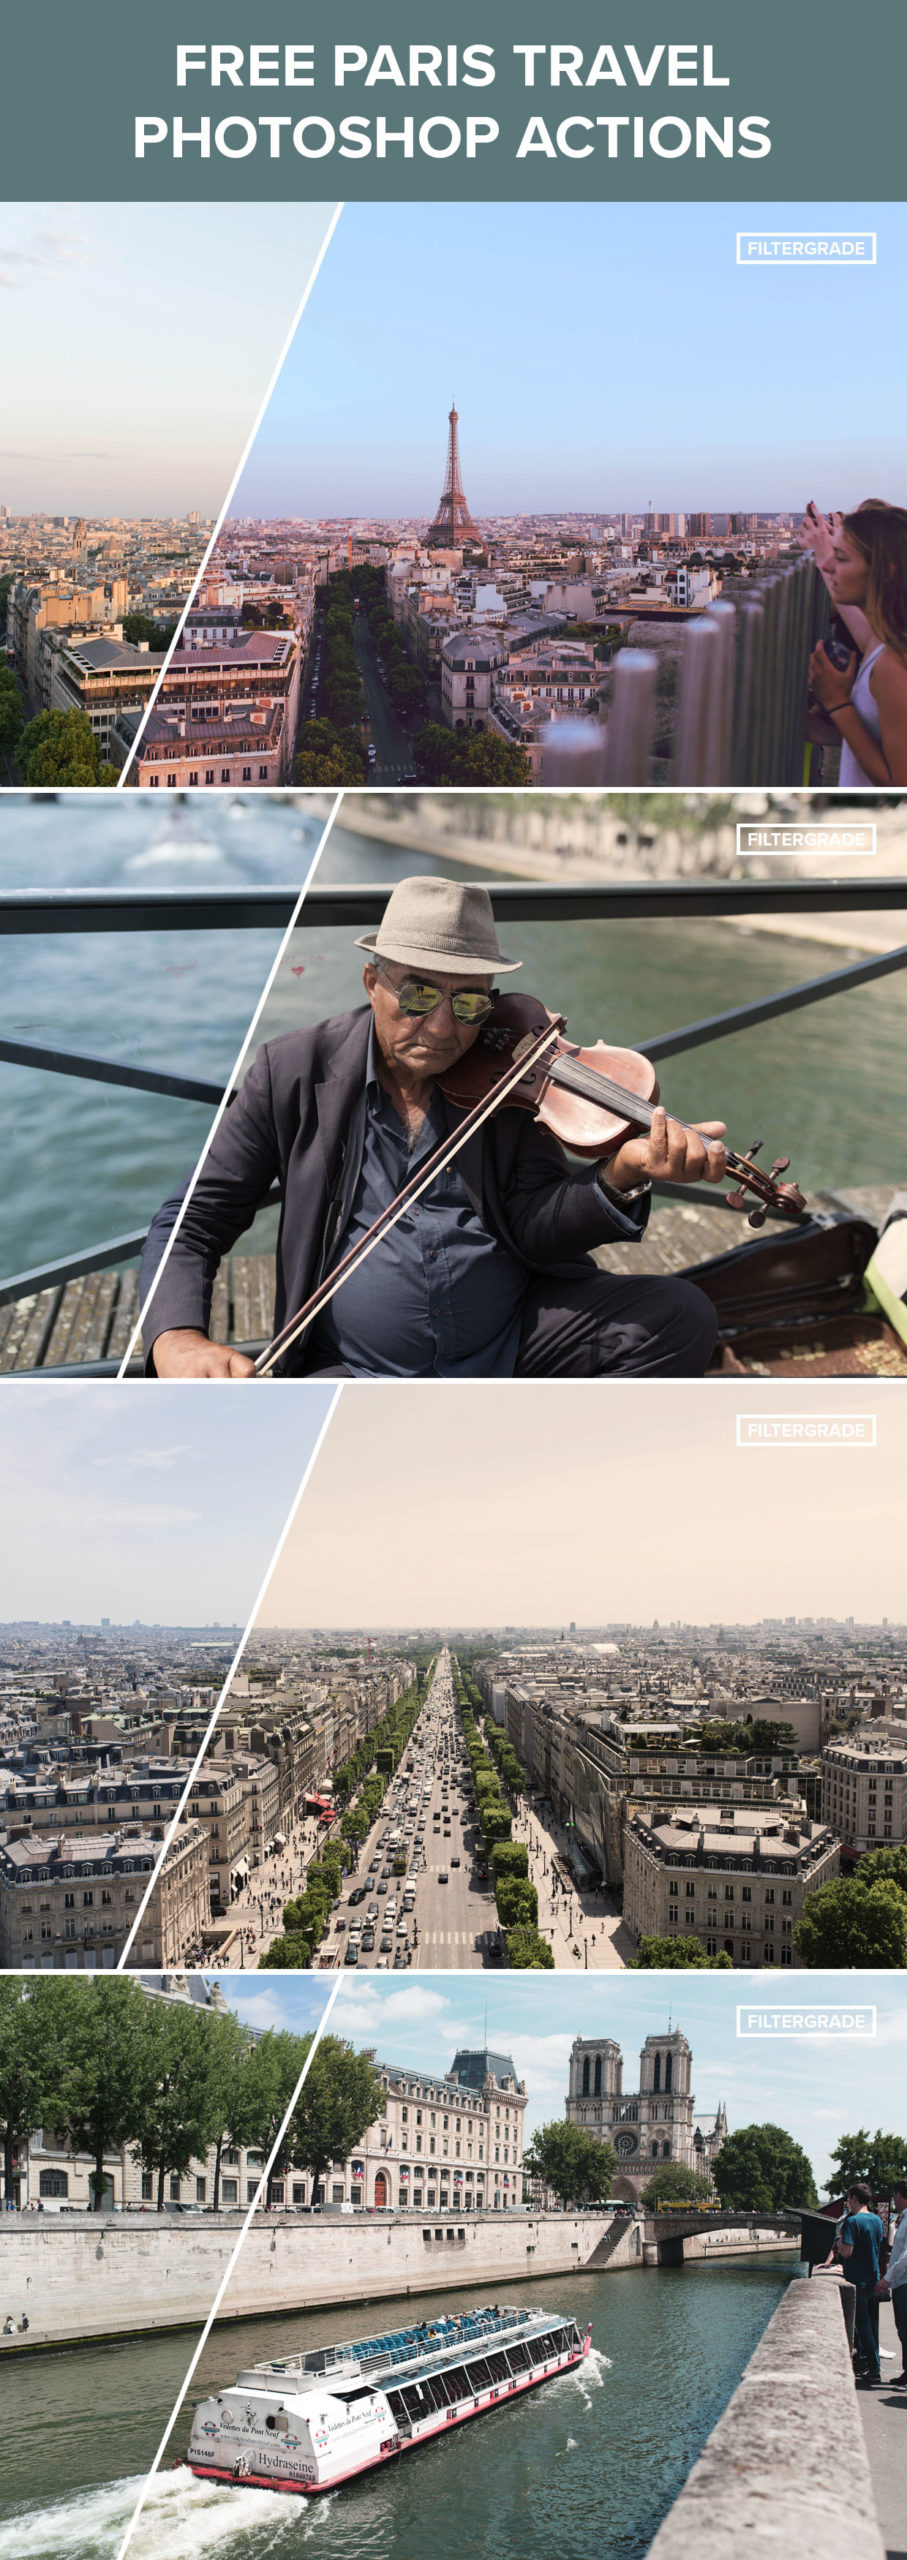 Free Paris Travel Photoshop Actions from FilterGrade